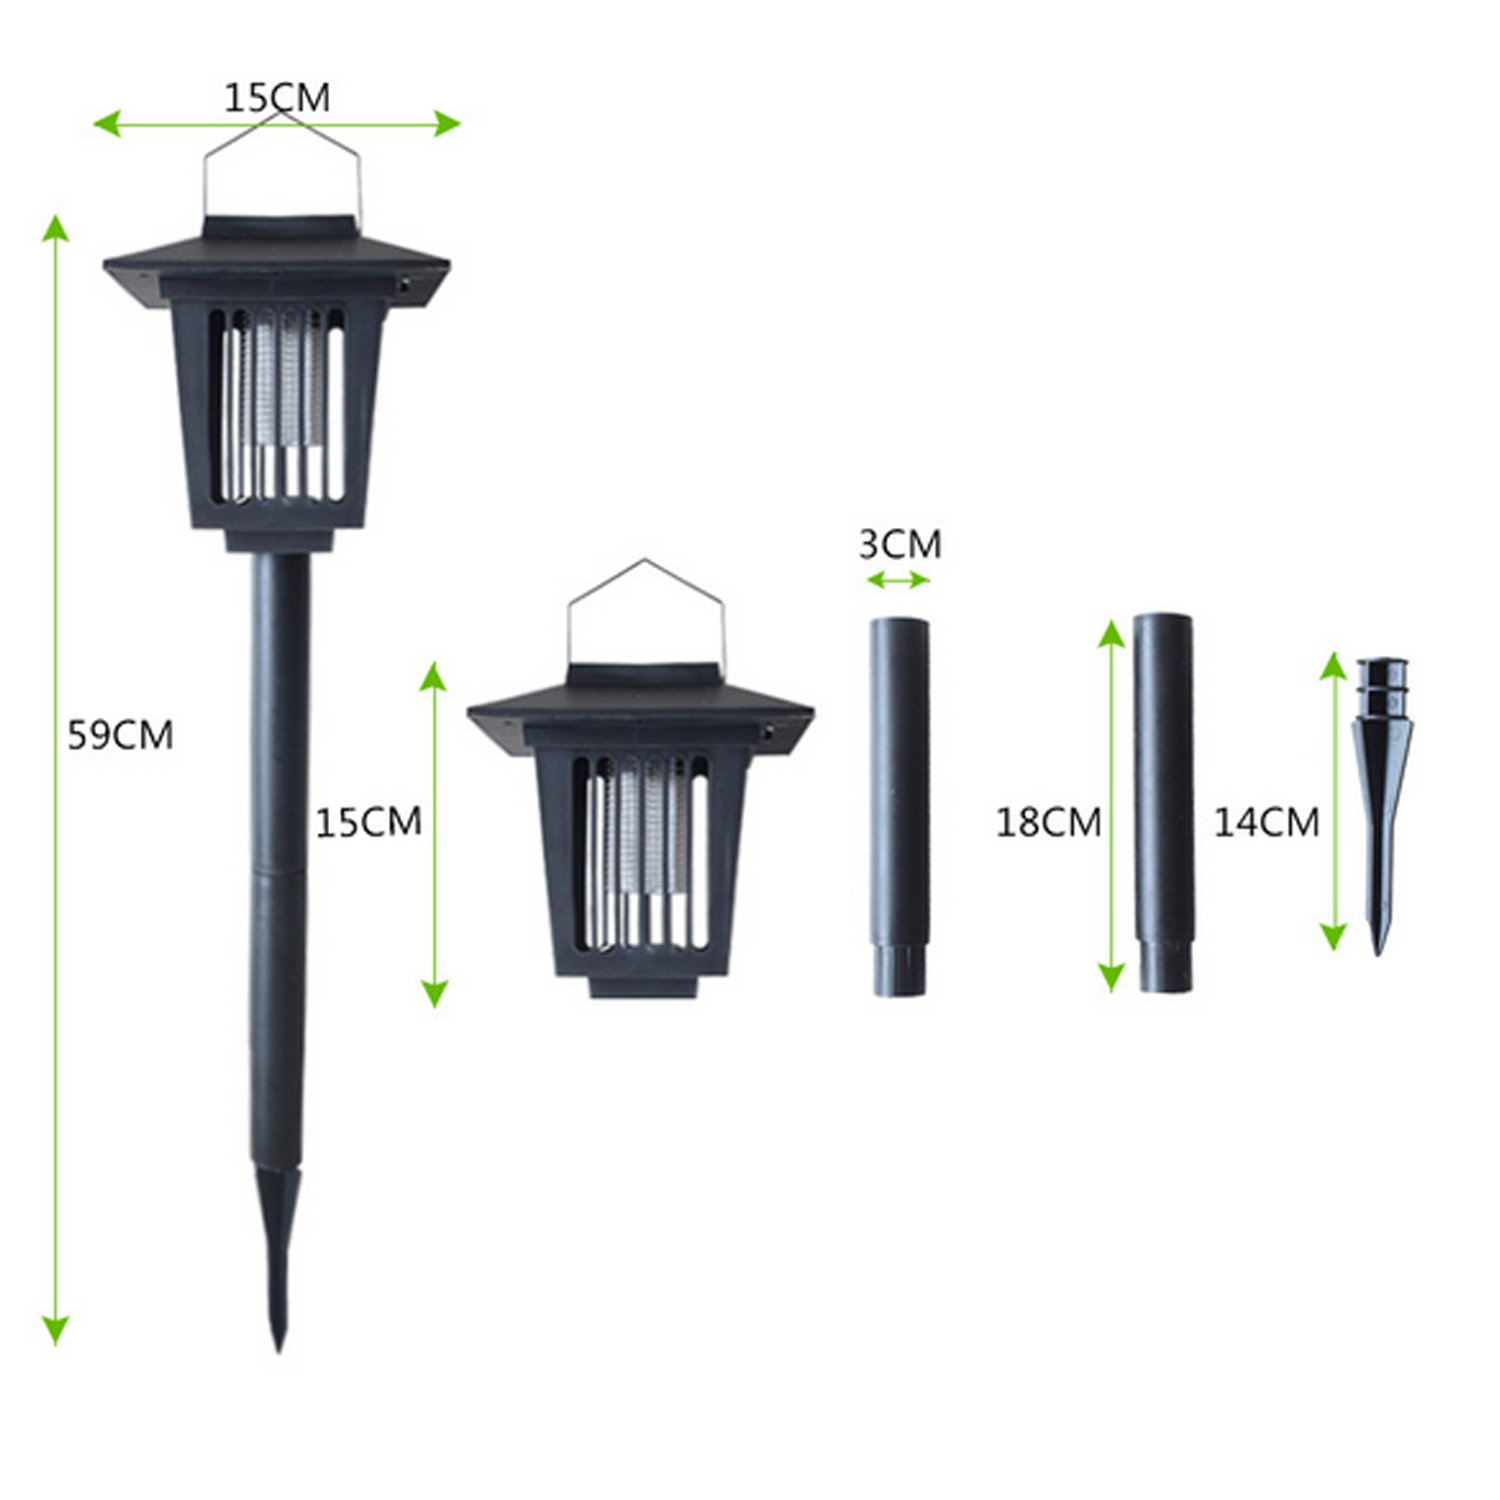 Solar Powered Bug Zapper Light, Solar Mosquito Killer Insect Killer Indoor Outdoor Fly Pest Trap Lamp Portable Garden Lawn Light For Garden, Patio, Outdoor Ground Residential, Commercial and Industri by THE SAFETY ZONEY (Image #3)